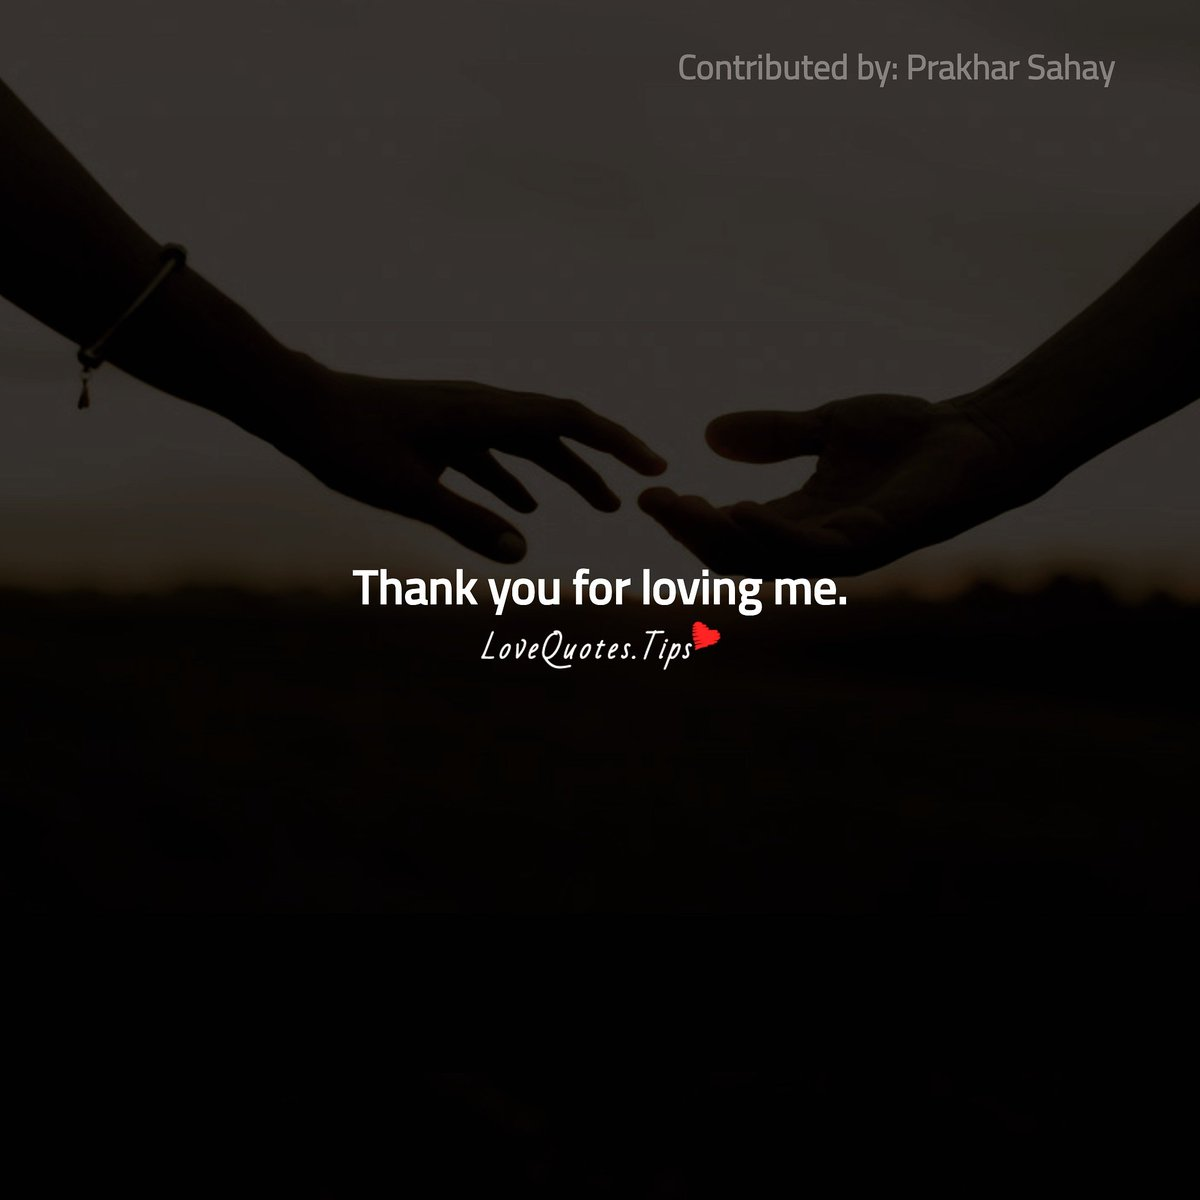 Thank you for loving me. #LoveQuotes pic.twitter.com/Mf0FAwg6b8